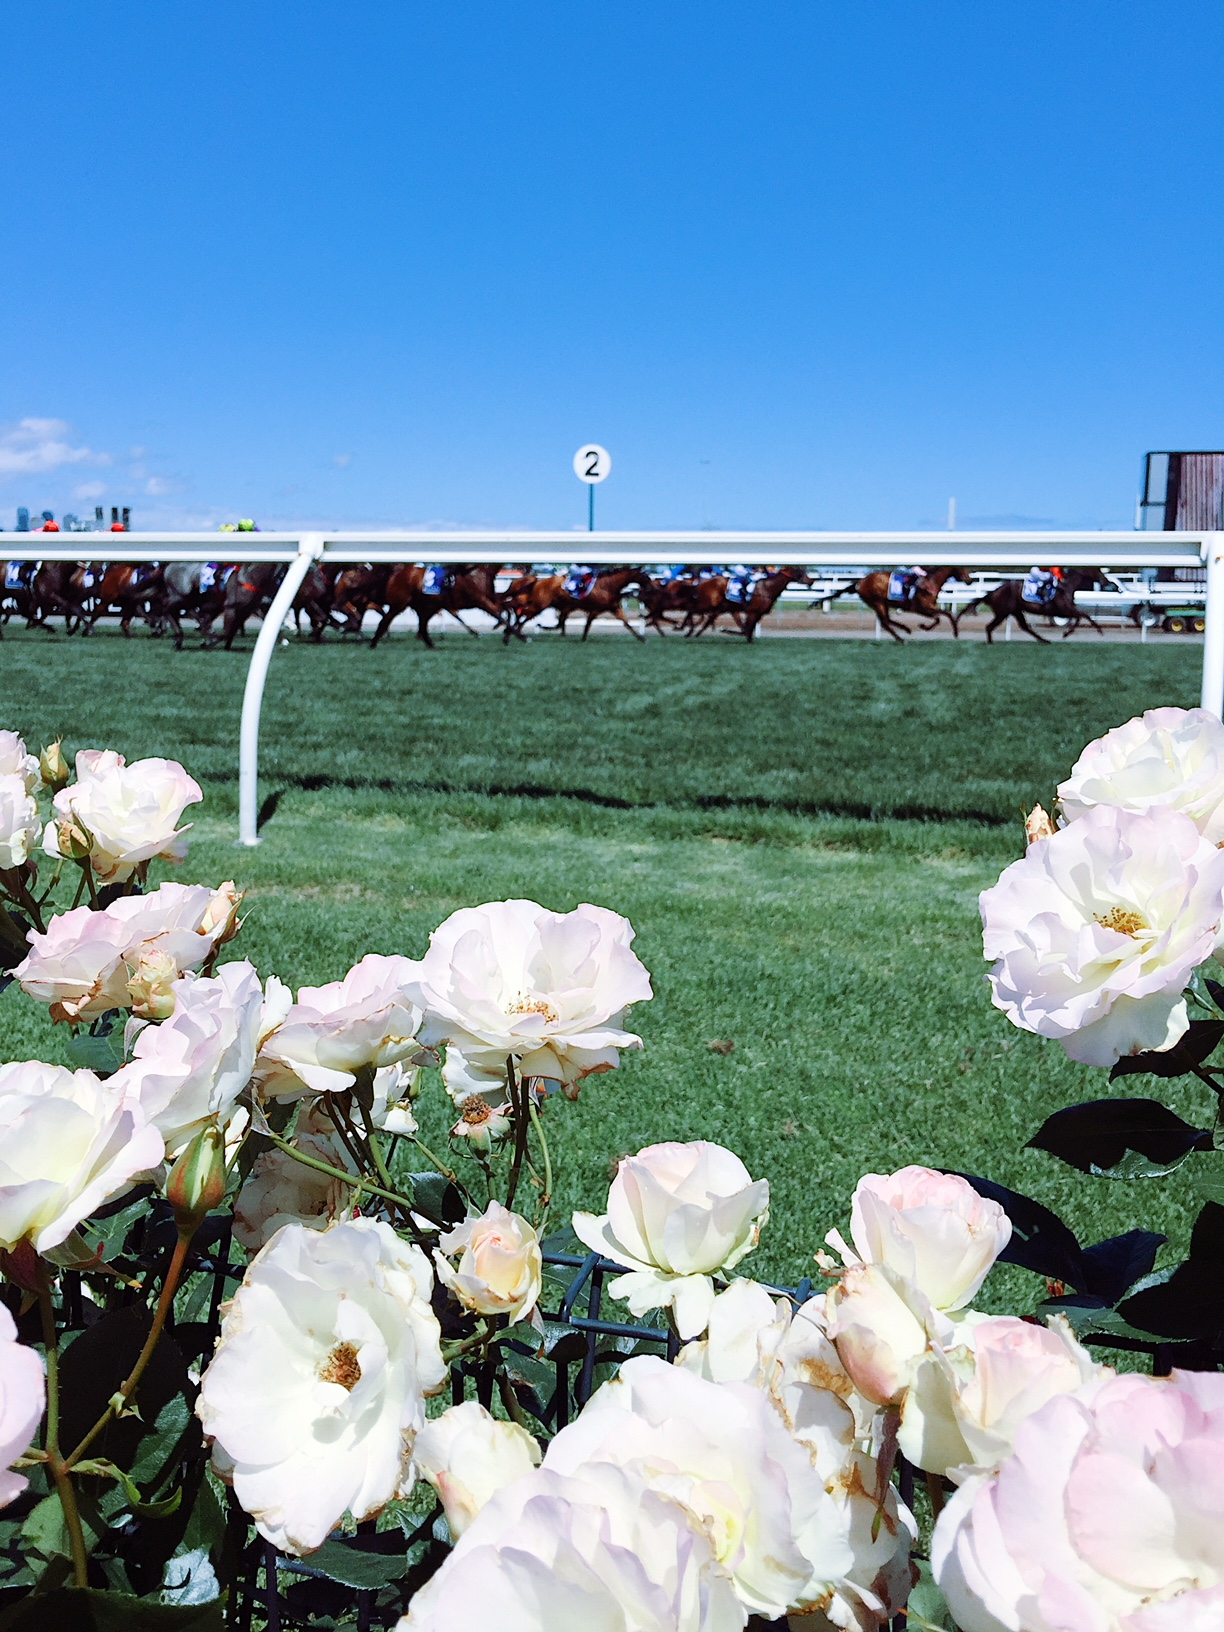 Melbourne-Cup-Race-Day-Outfit-Ideas-roses-at-flemington-racing-club-derby-day-horse-race